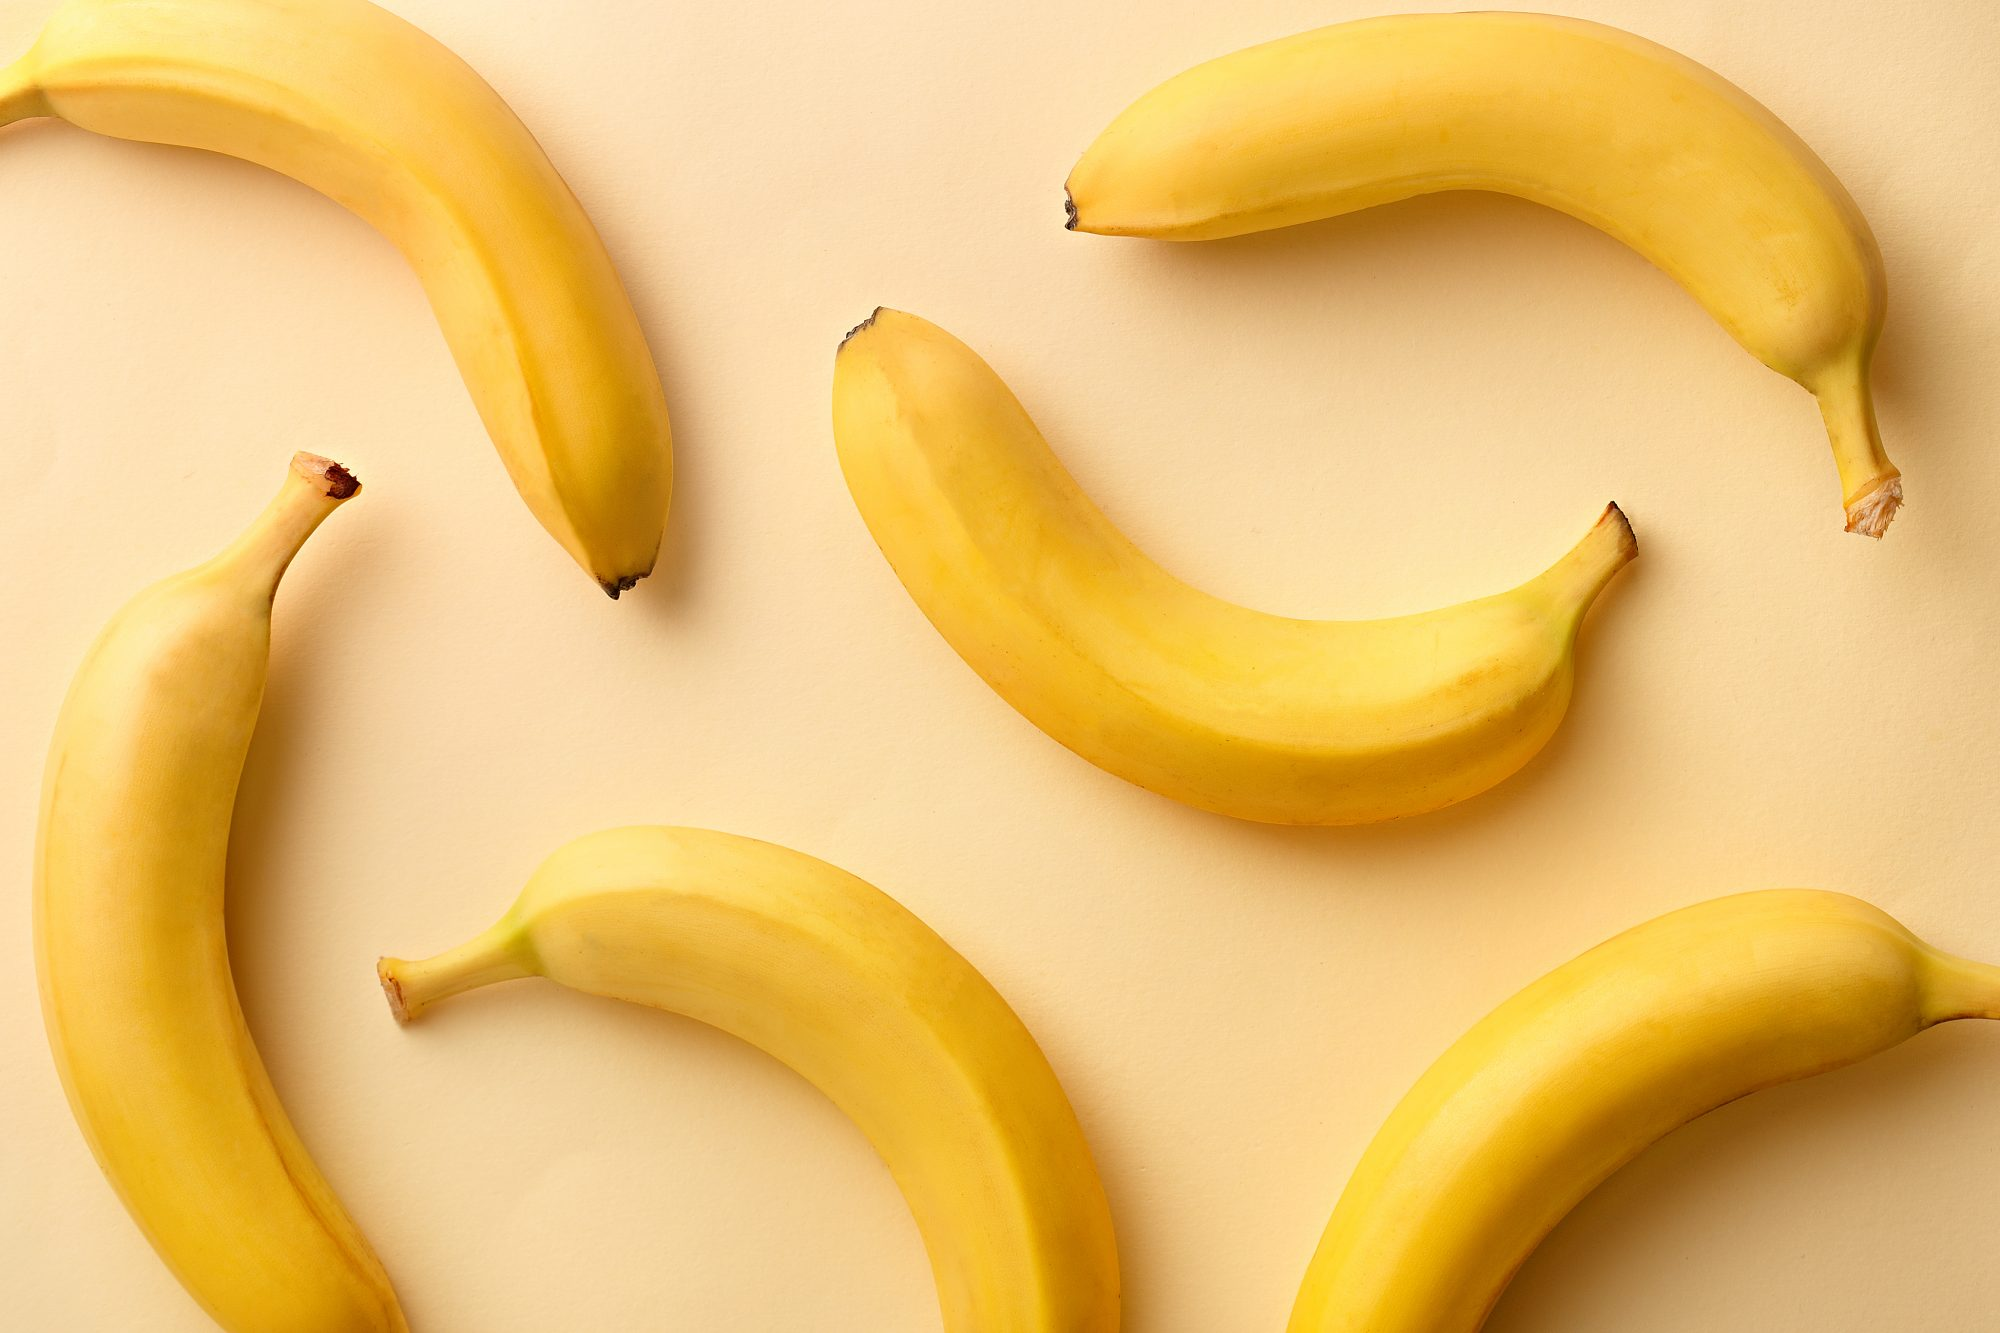 The Proper Way to Freeze Bananas